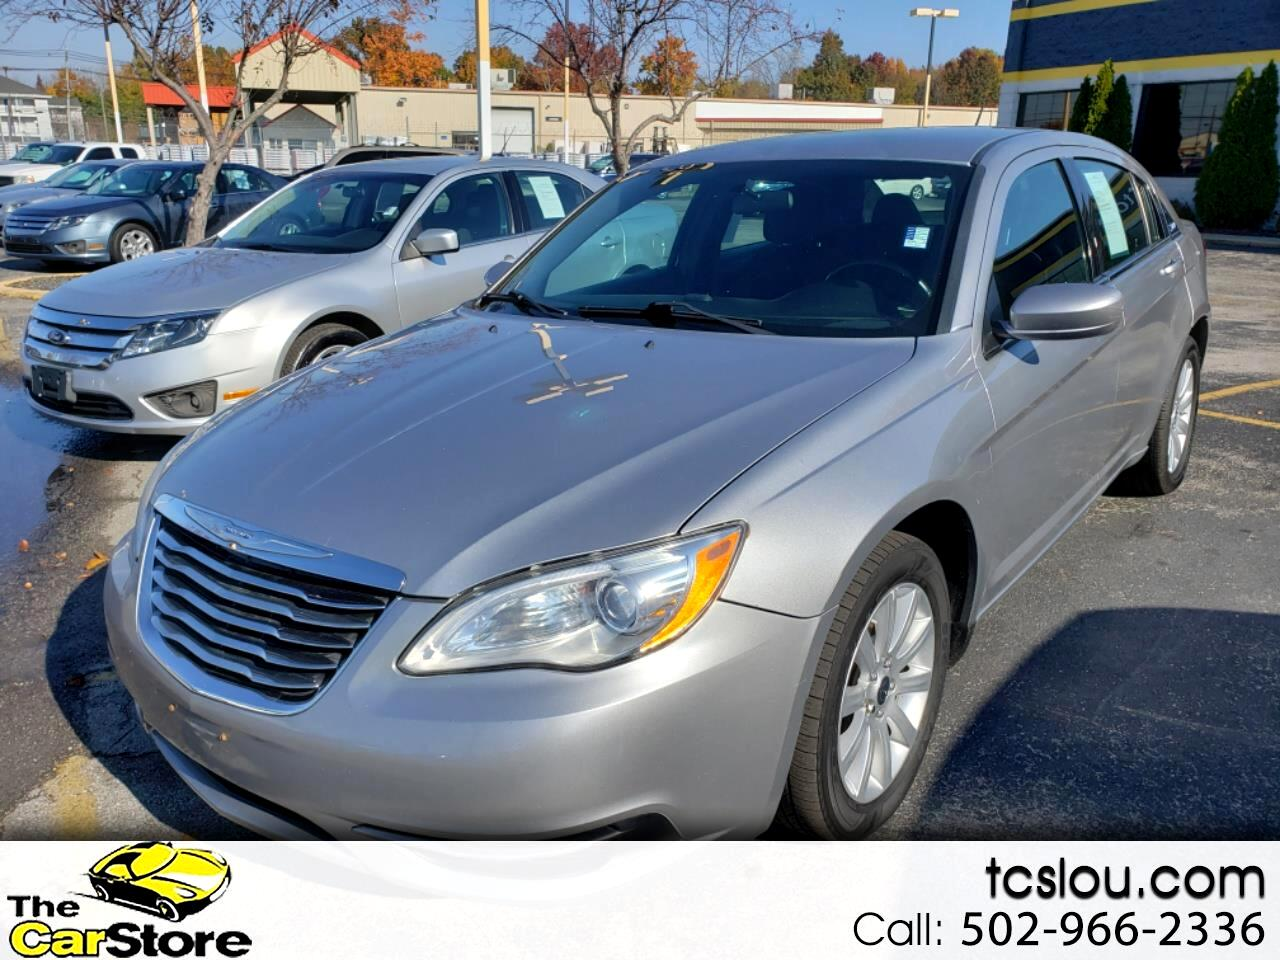 2013 Chrysler 200 4dr Sdn Touring